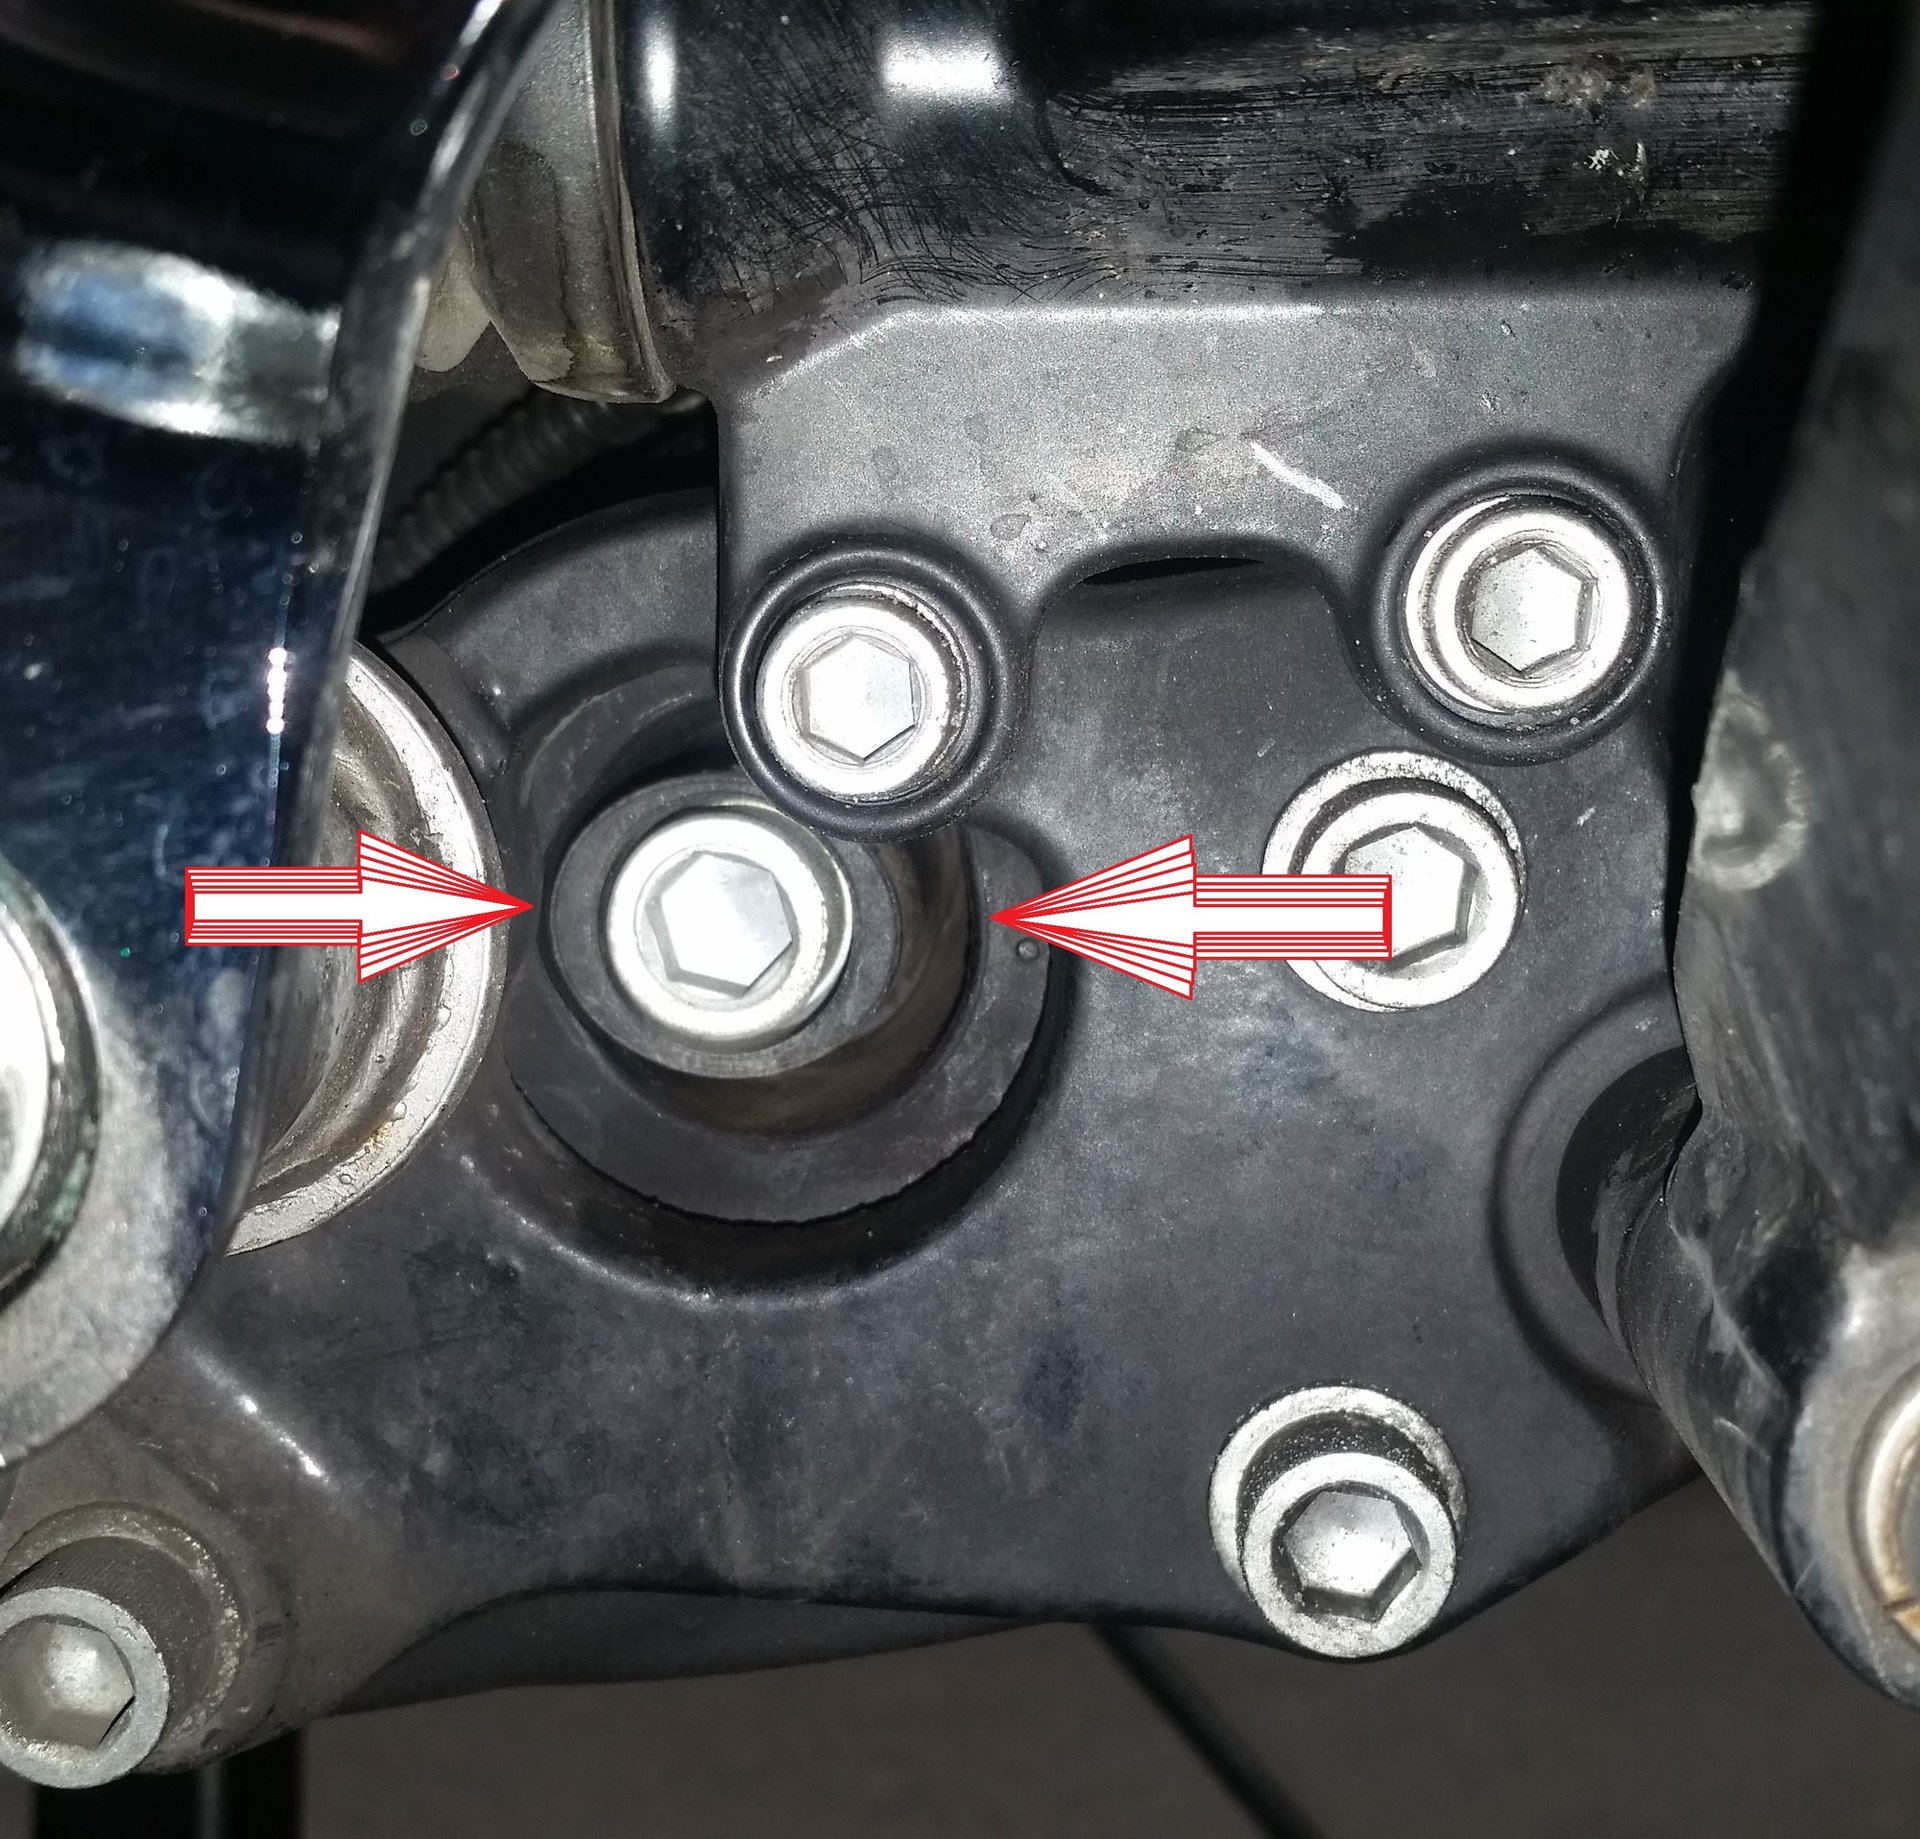 2009-2016 Right front motor mount alignment poll | V-Twin Forum